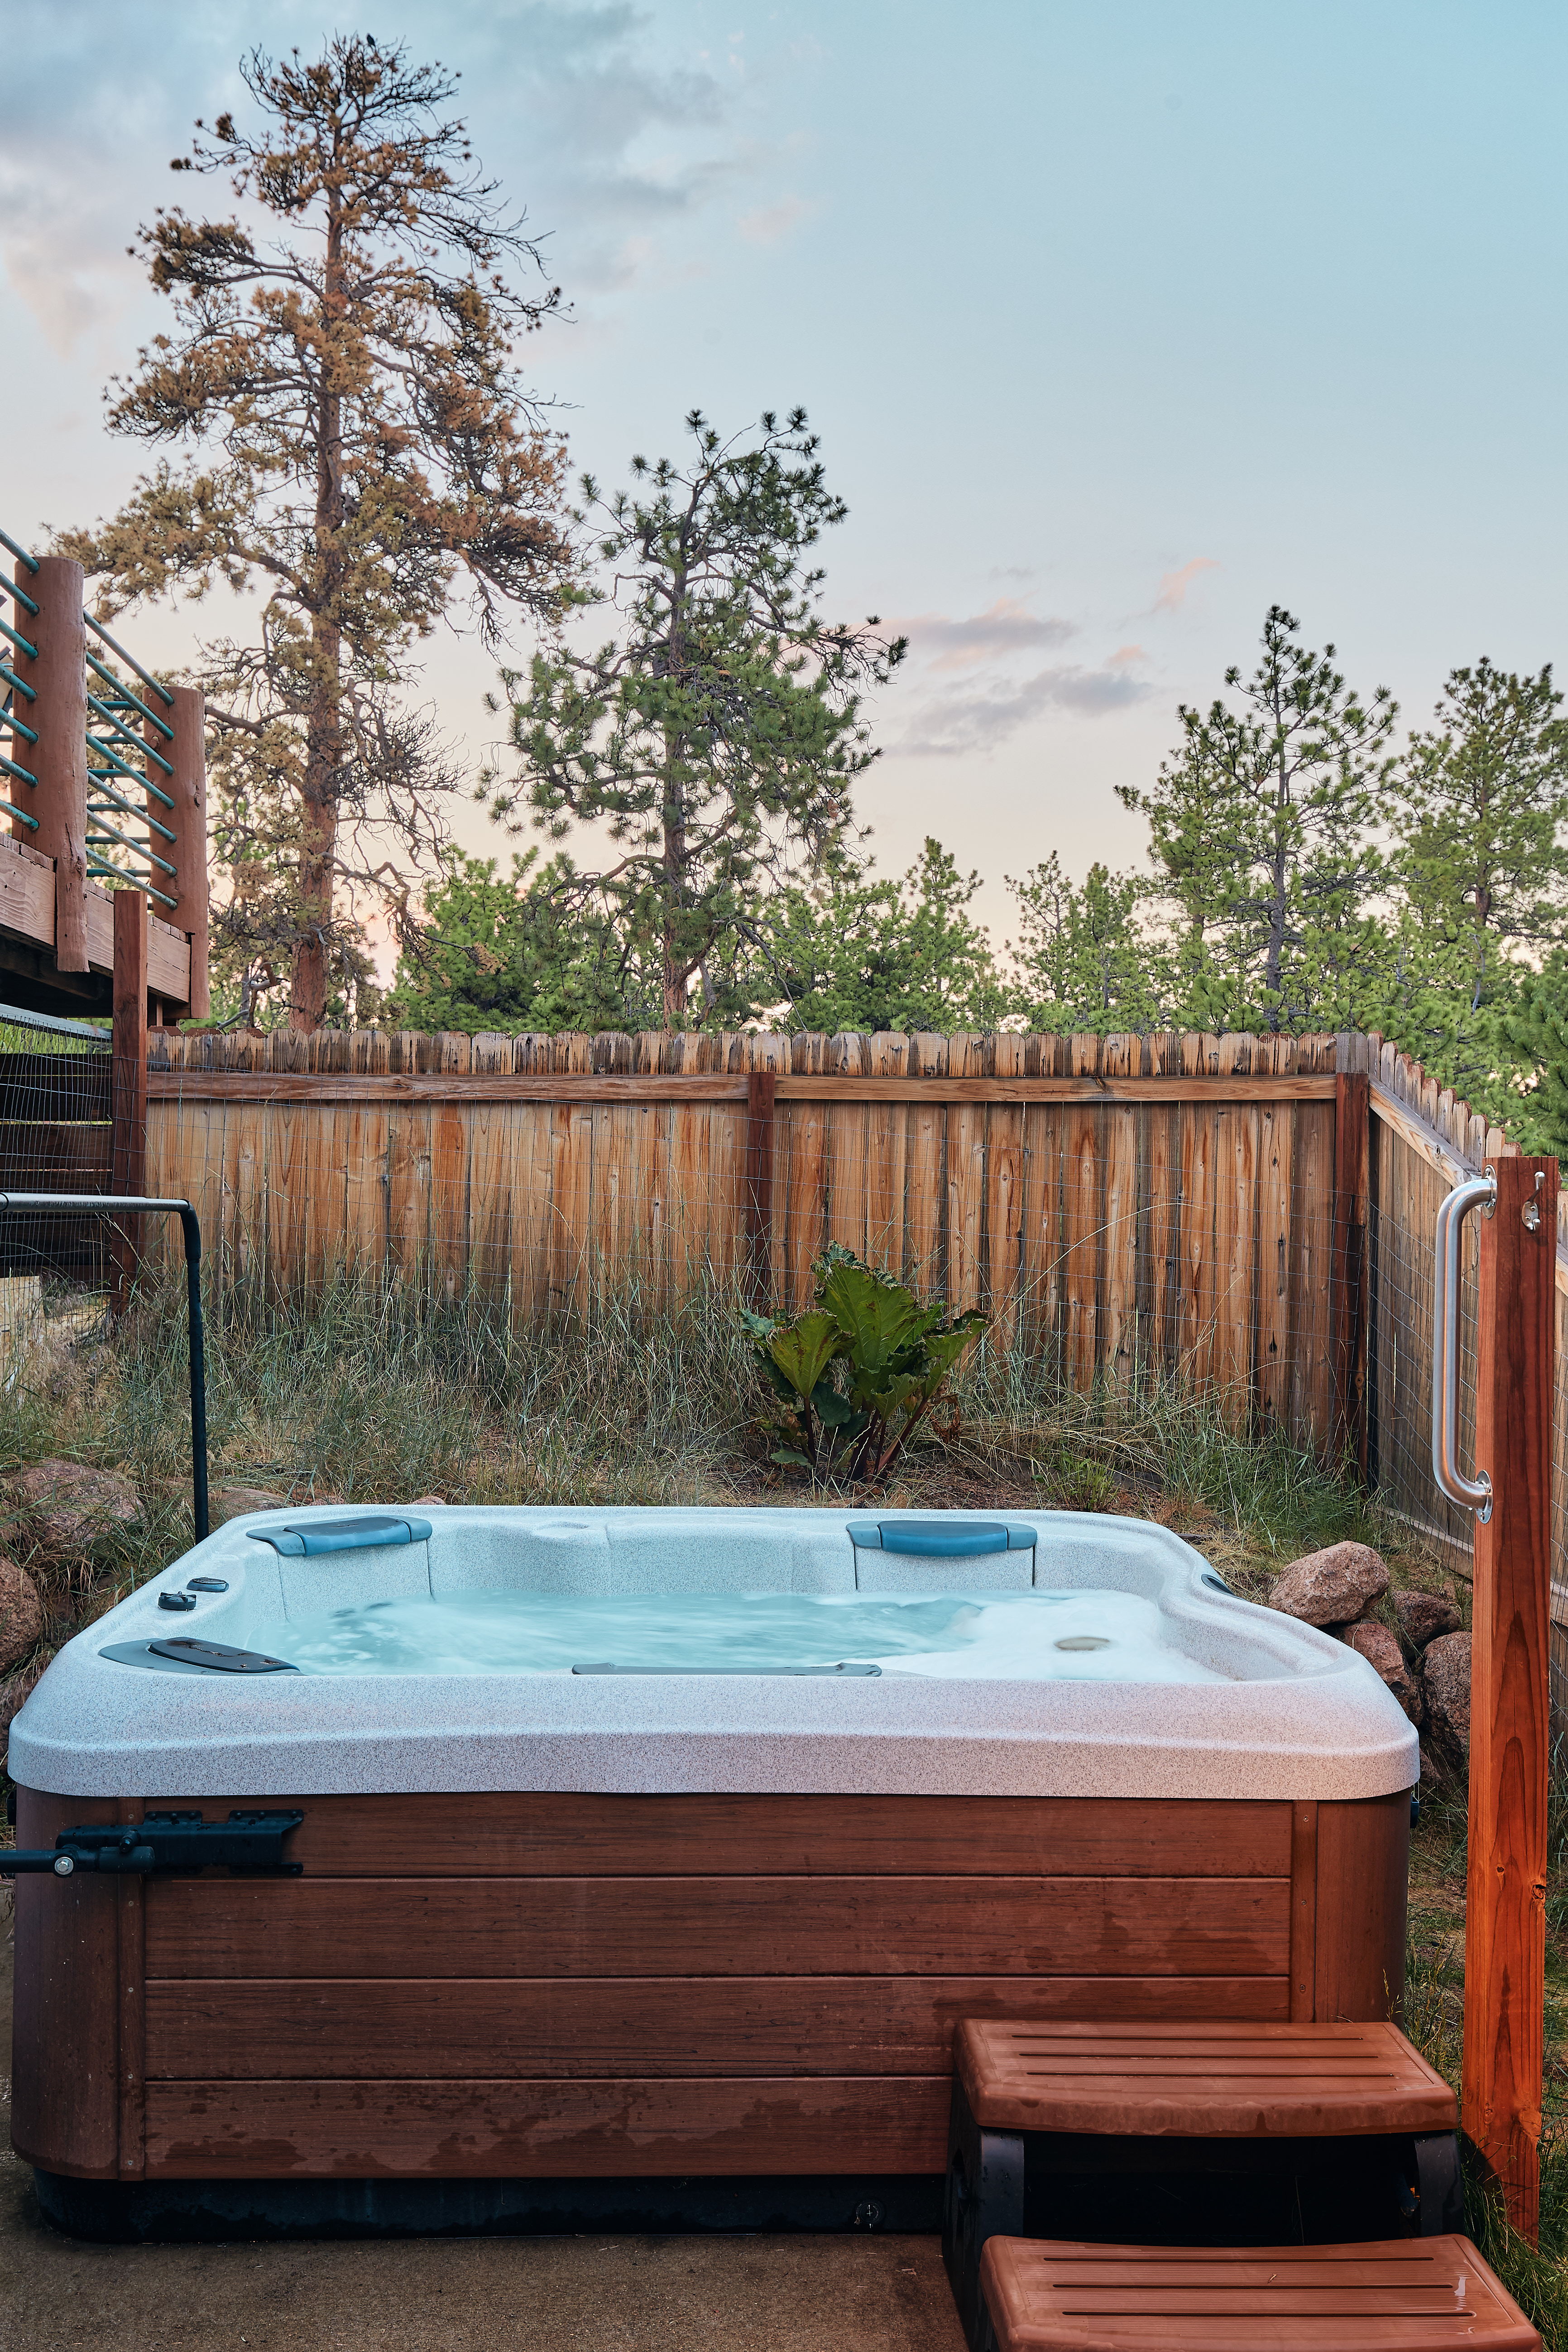 Take a dip in the hot tub after a day of exploring!